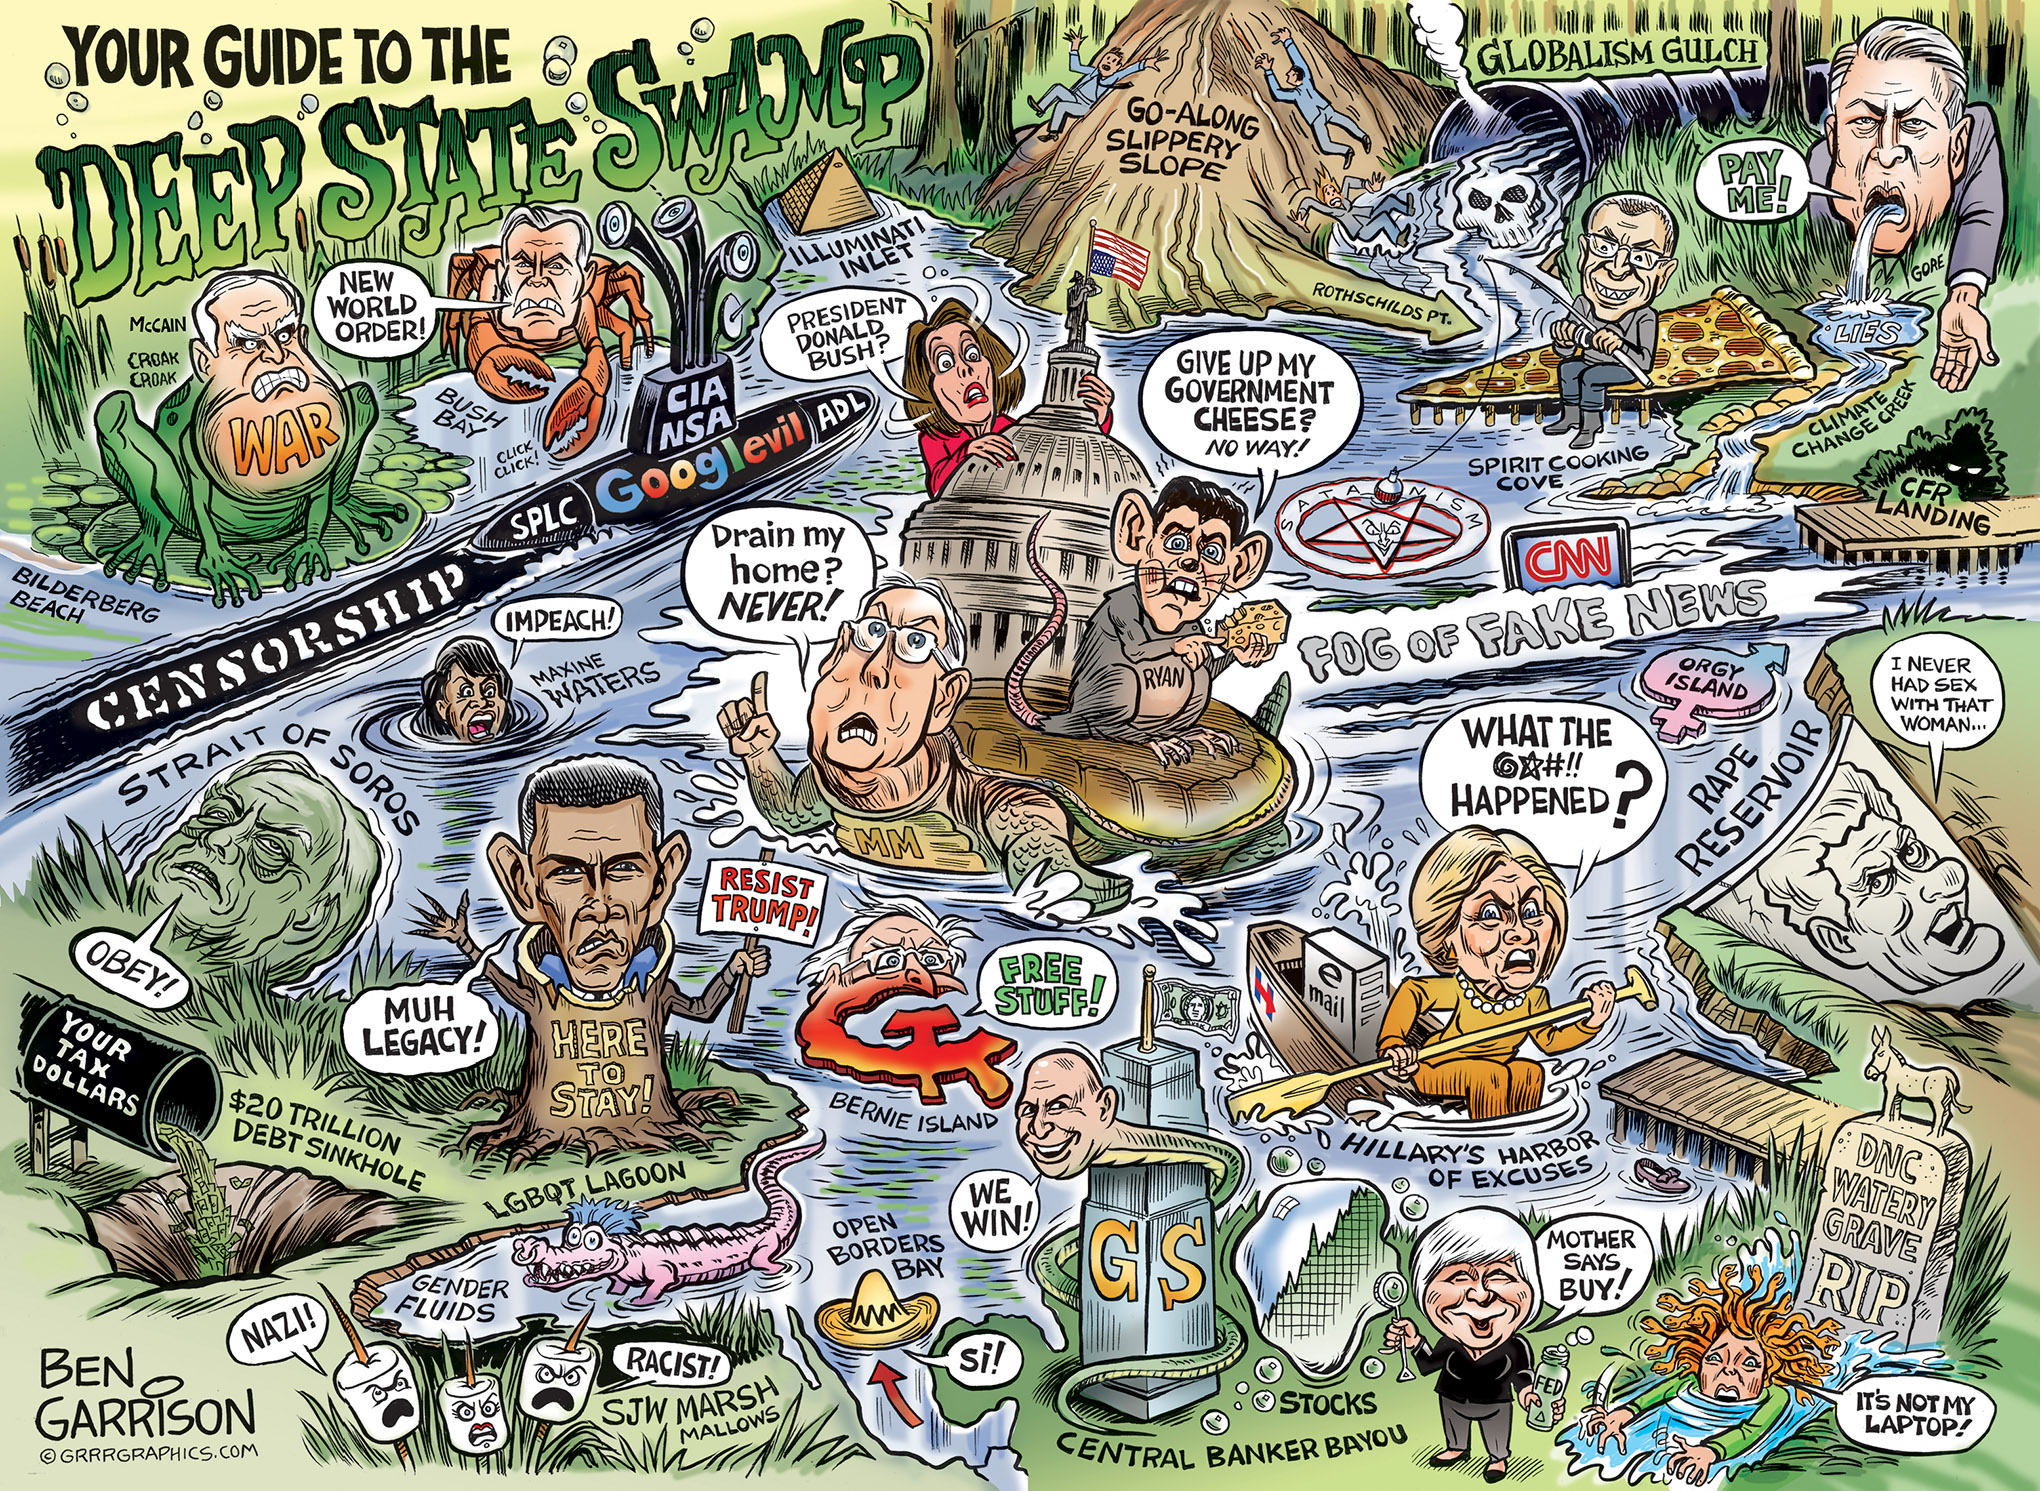 guide-to-deep-state-swamp-ben-garrison